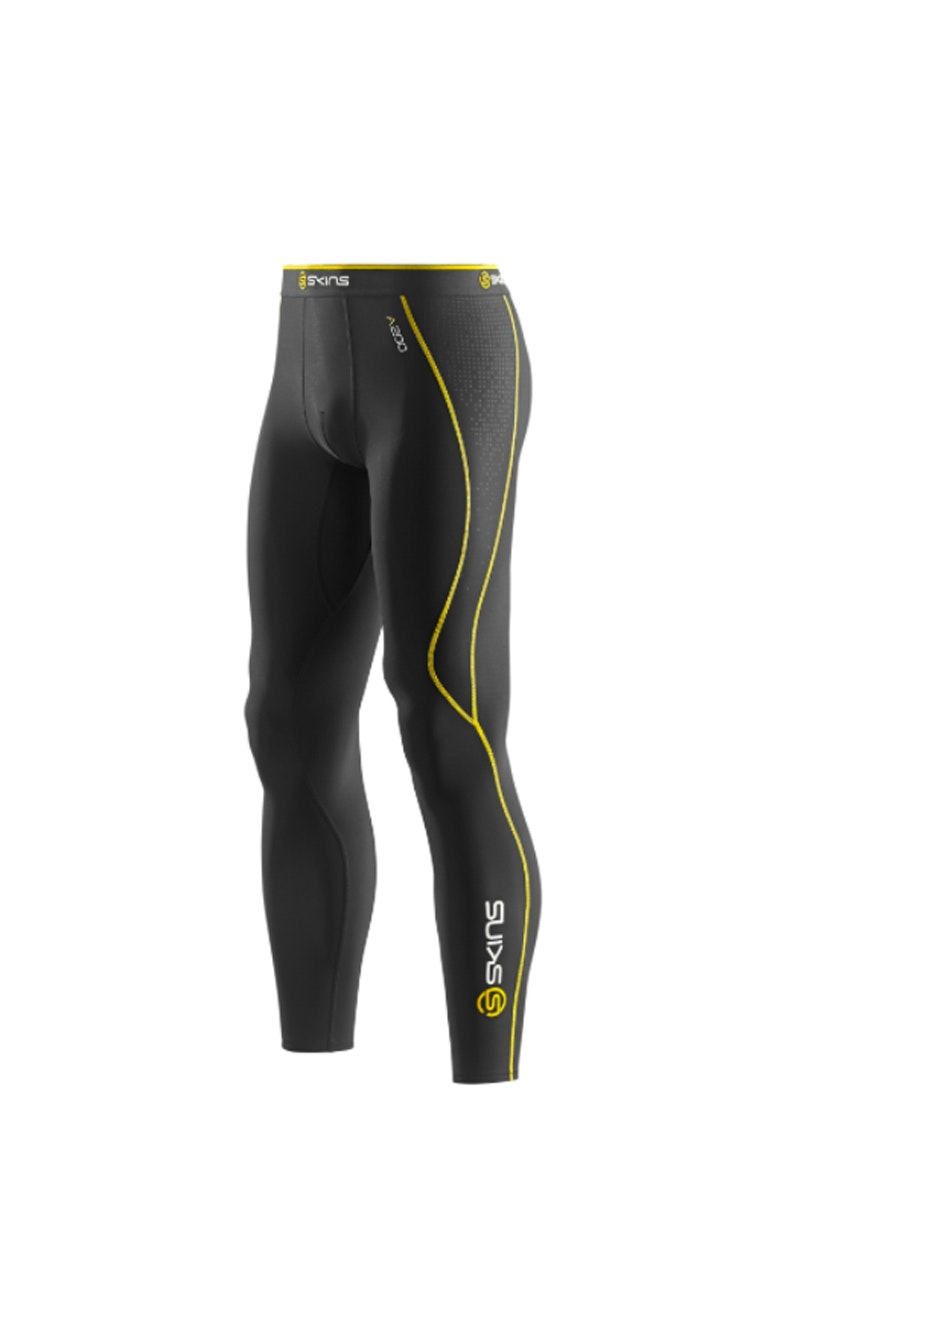 Skins -  A200 Bk/Yellow Thera Long Tight - Mens